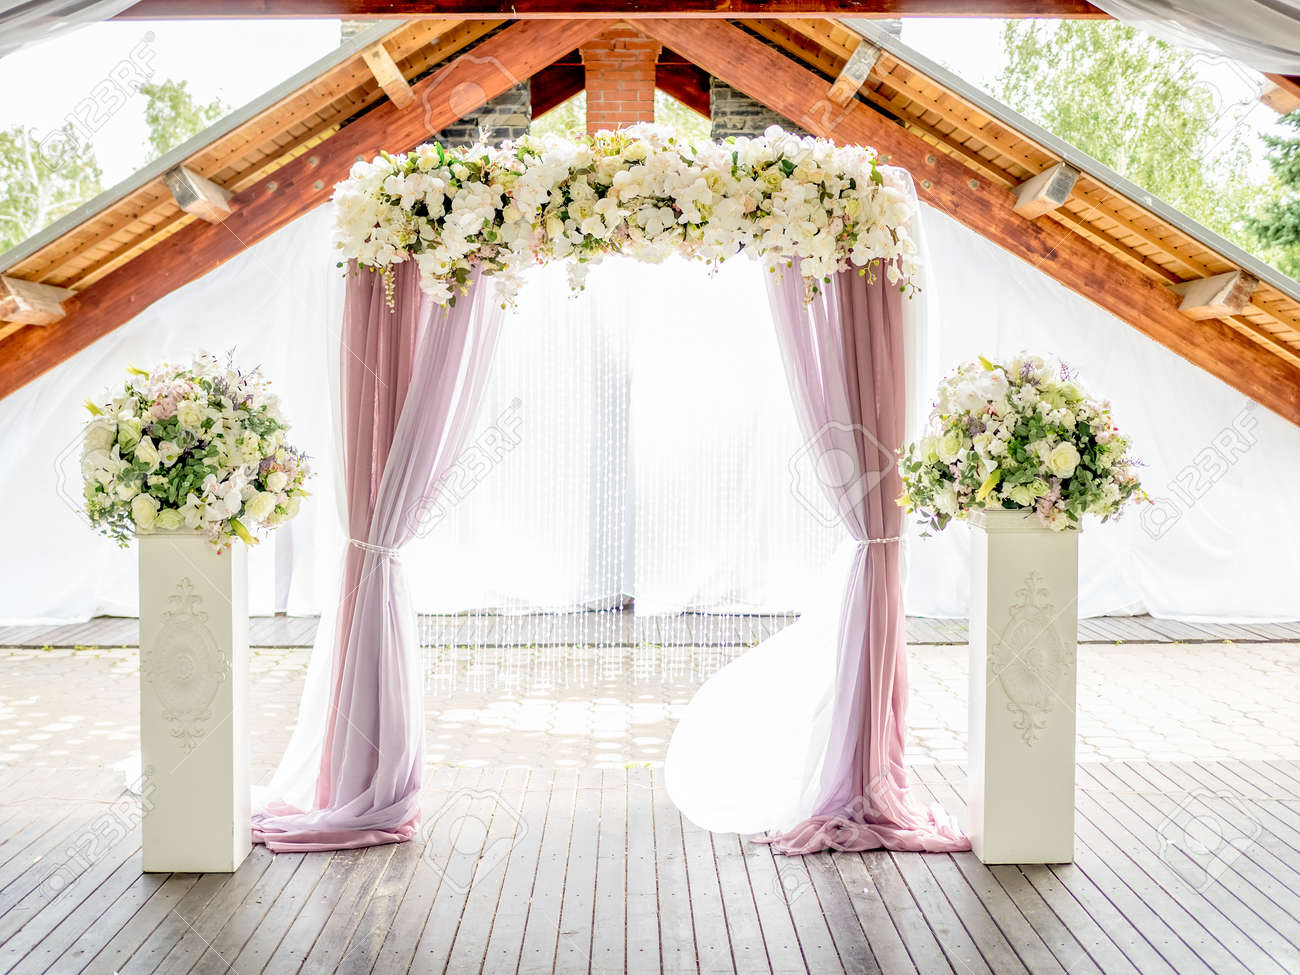 floral wedding arch of white roses and lillies ith purple with curtains - 54805276